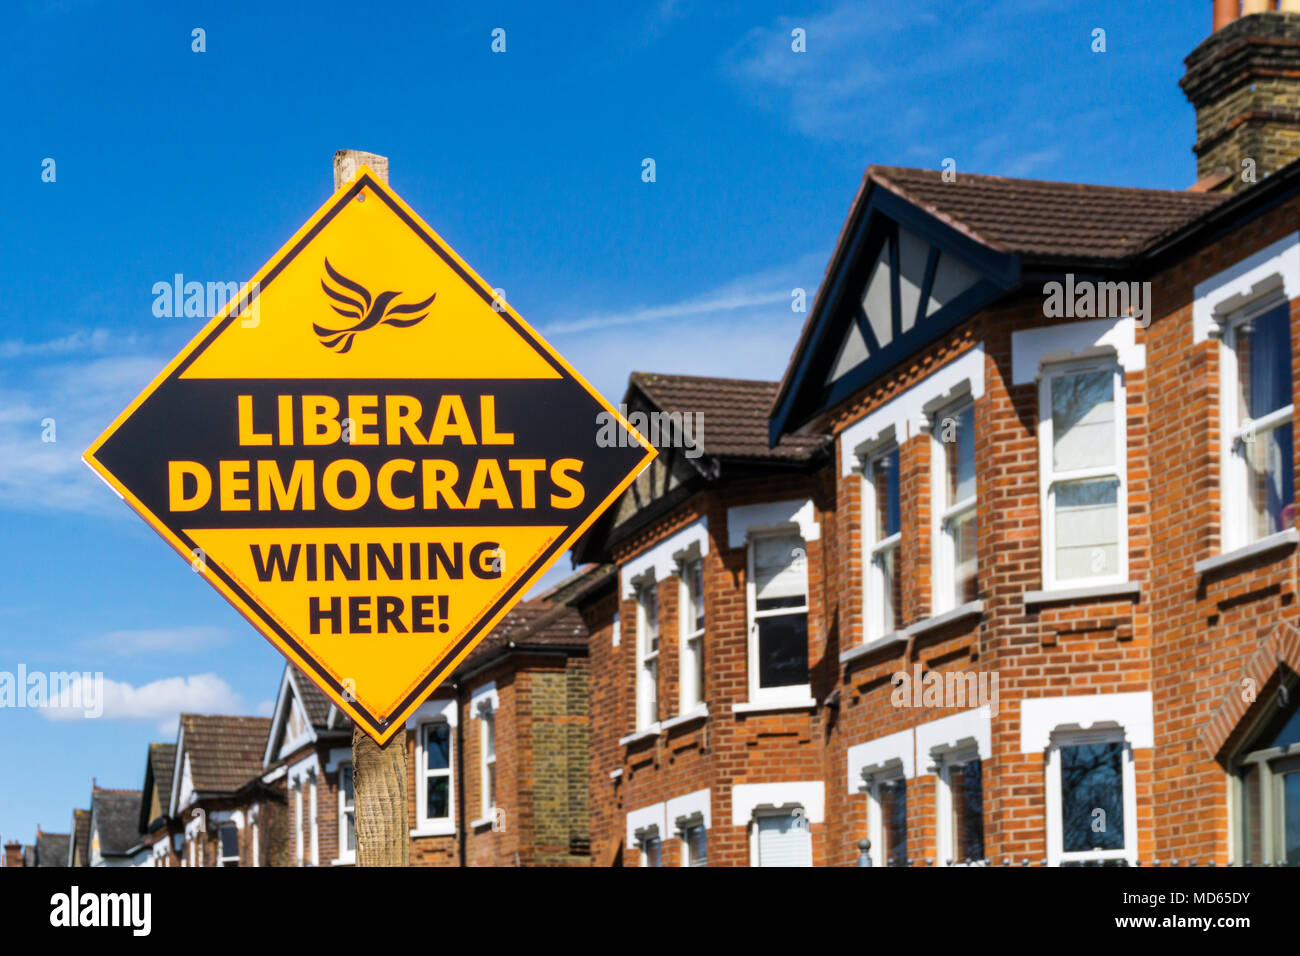 A Liberal Democrats election sign in the London Borough of Bromley, South London, before the May 2018 local elections. Suburban housing in background. - Stock Image